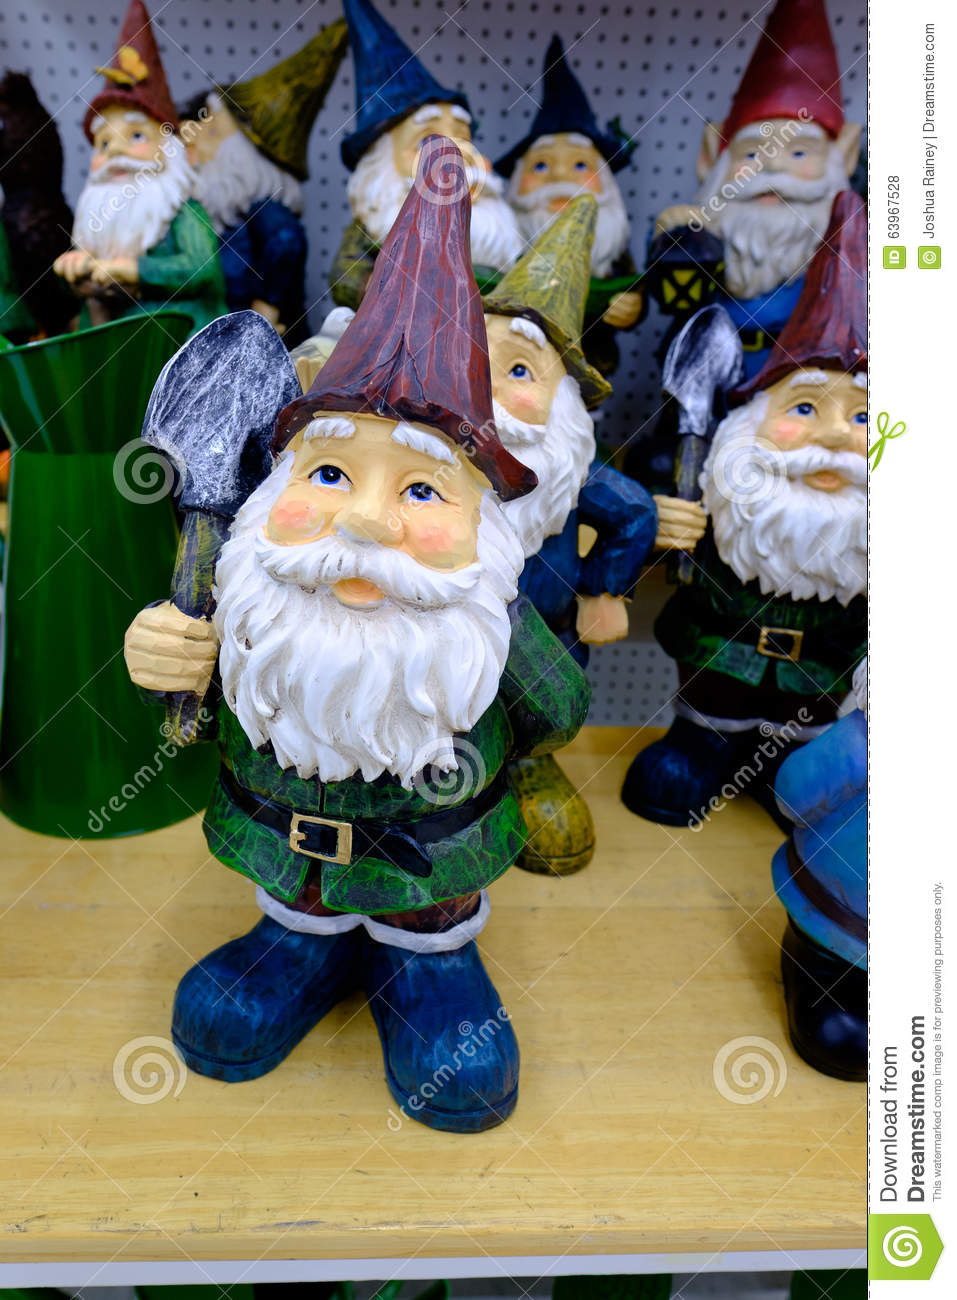 garden gnome at christmas time - Fred Meyer Hours Christmas